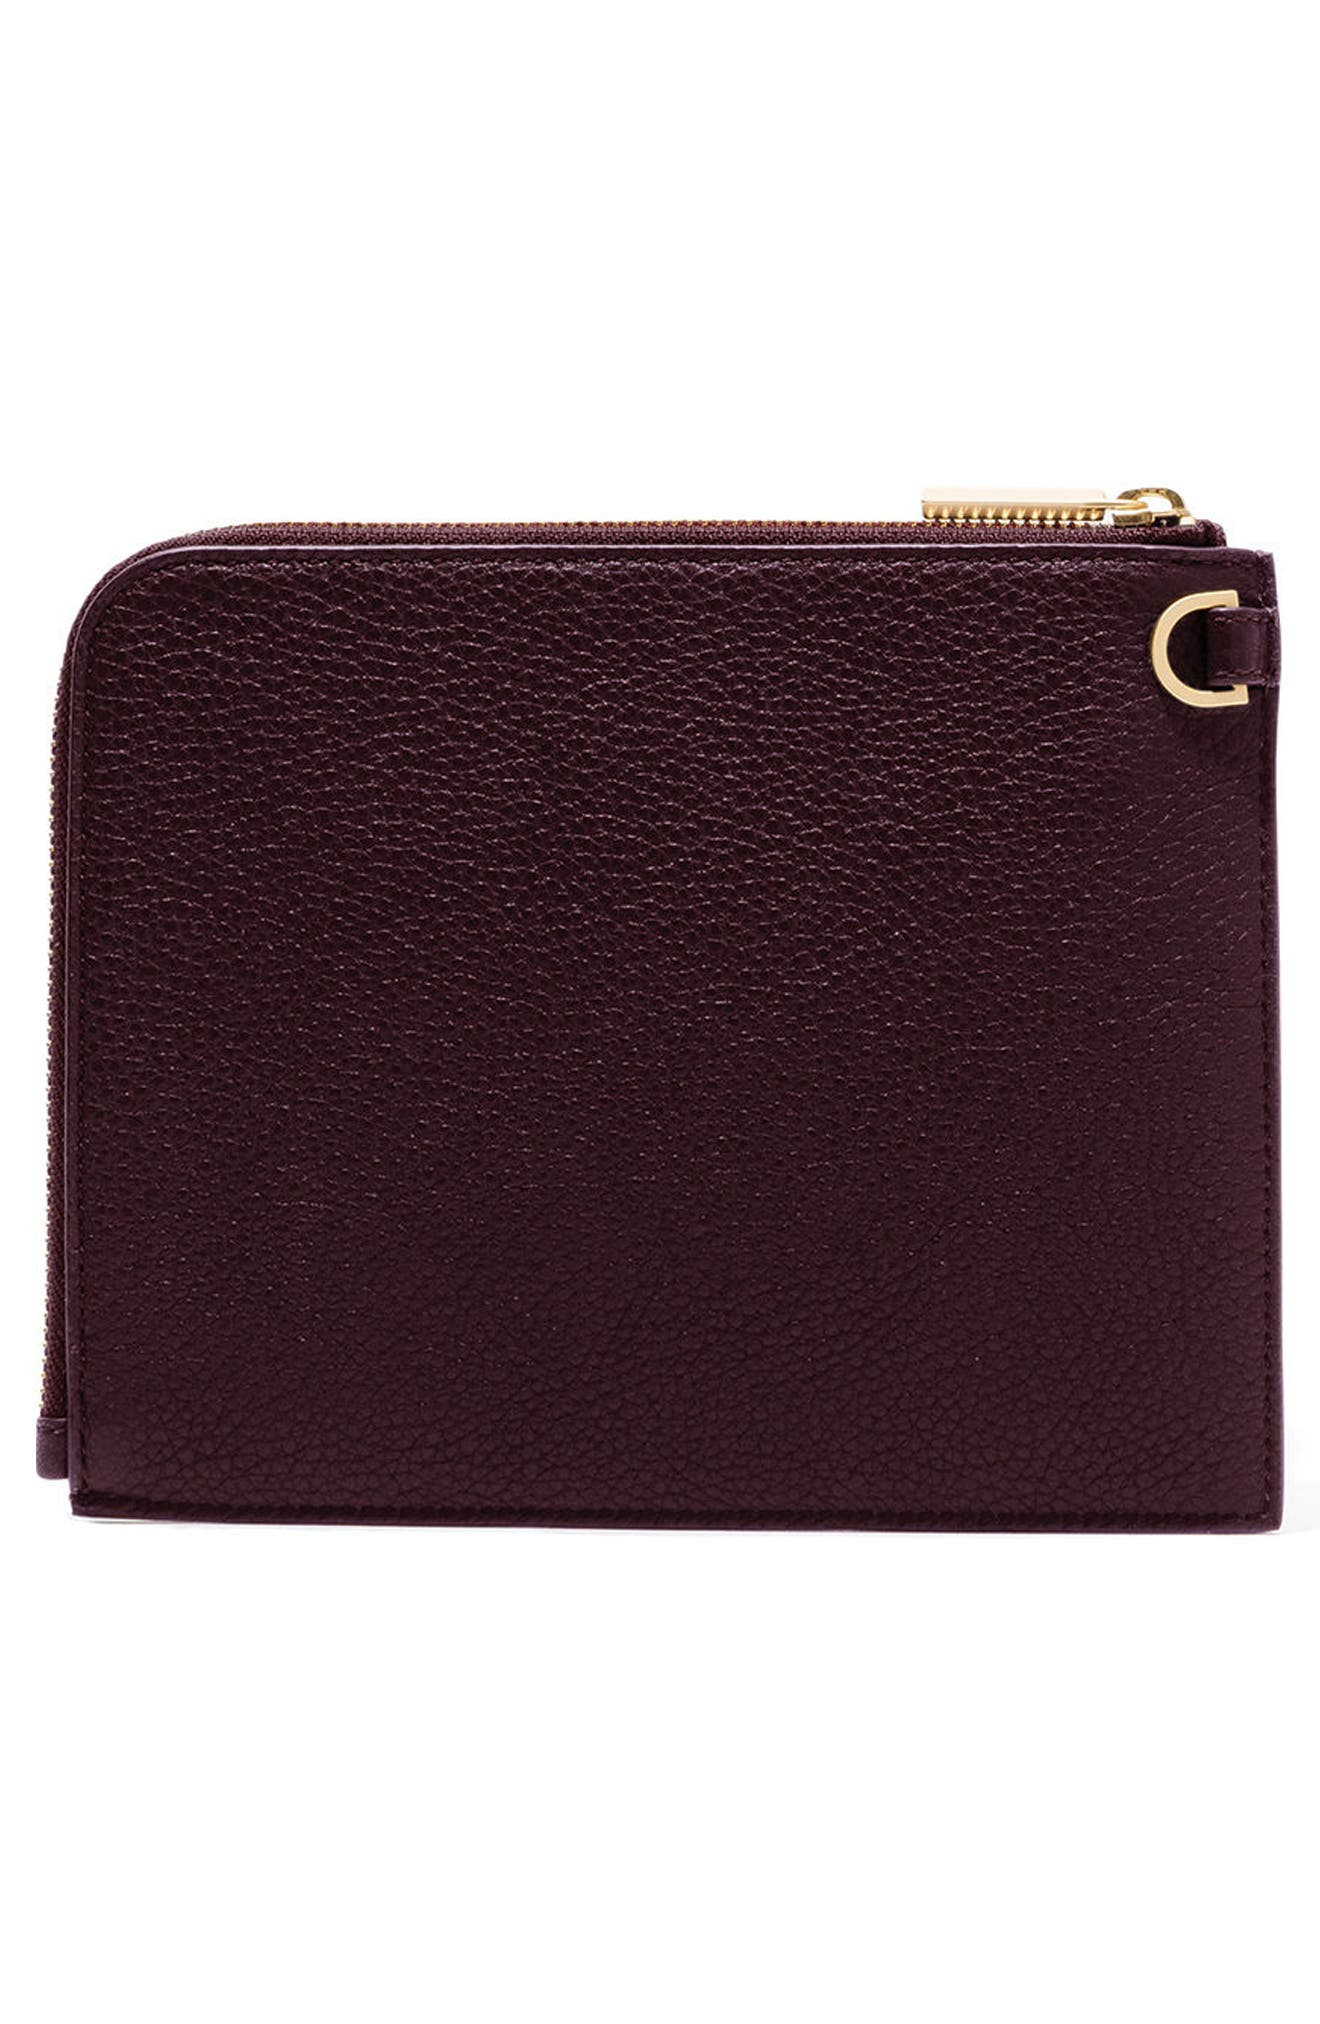 Small Elle Leather Clutch,                             Alternate thumbnail 18, color,